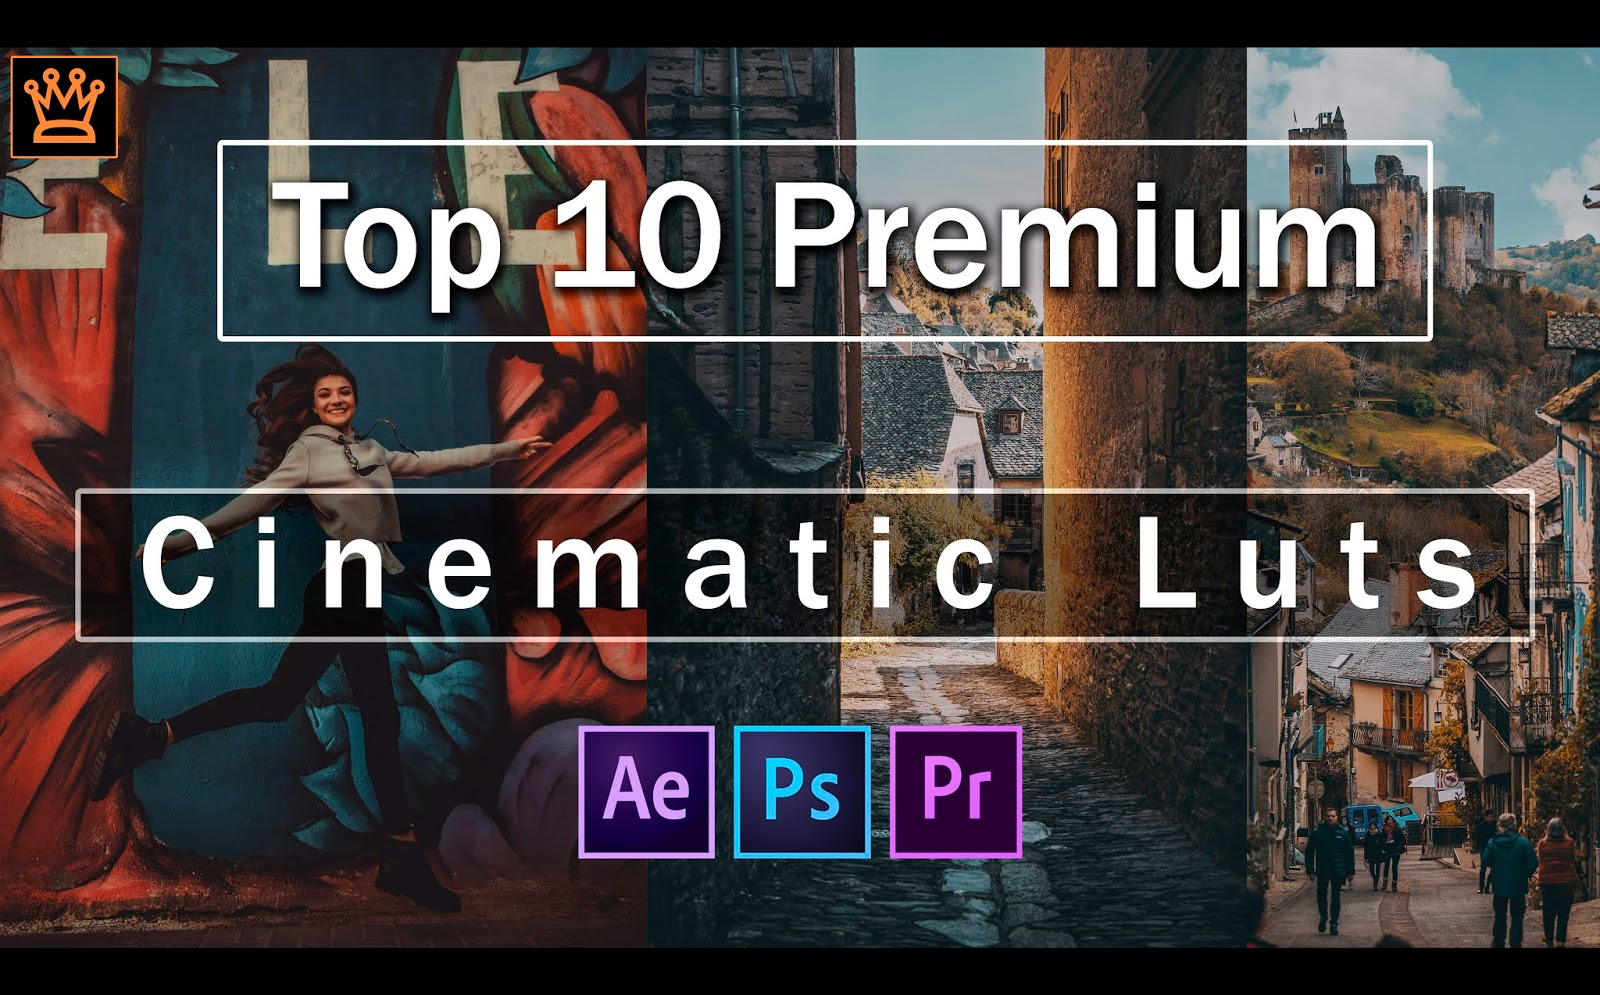 Top 10 Premium Cinematic LUTs of 2020 for Adobe After Effects, Adobe Premiere Pro, Photoshop